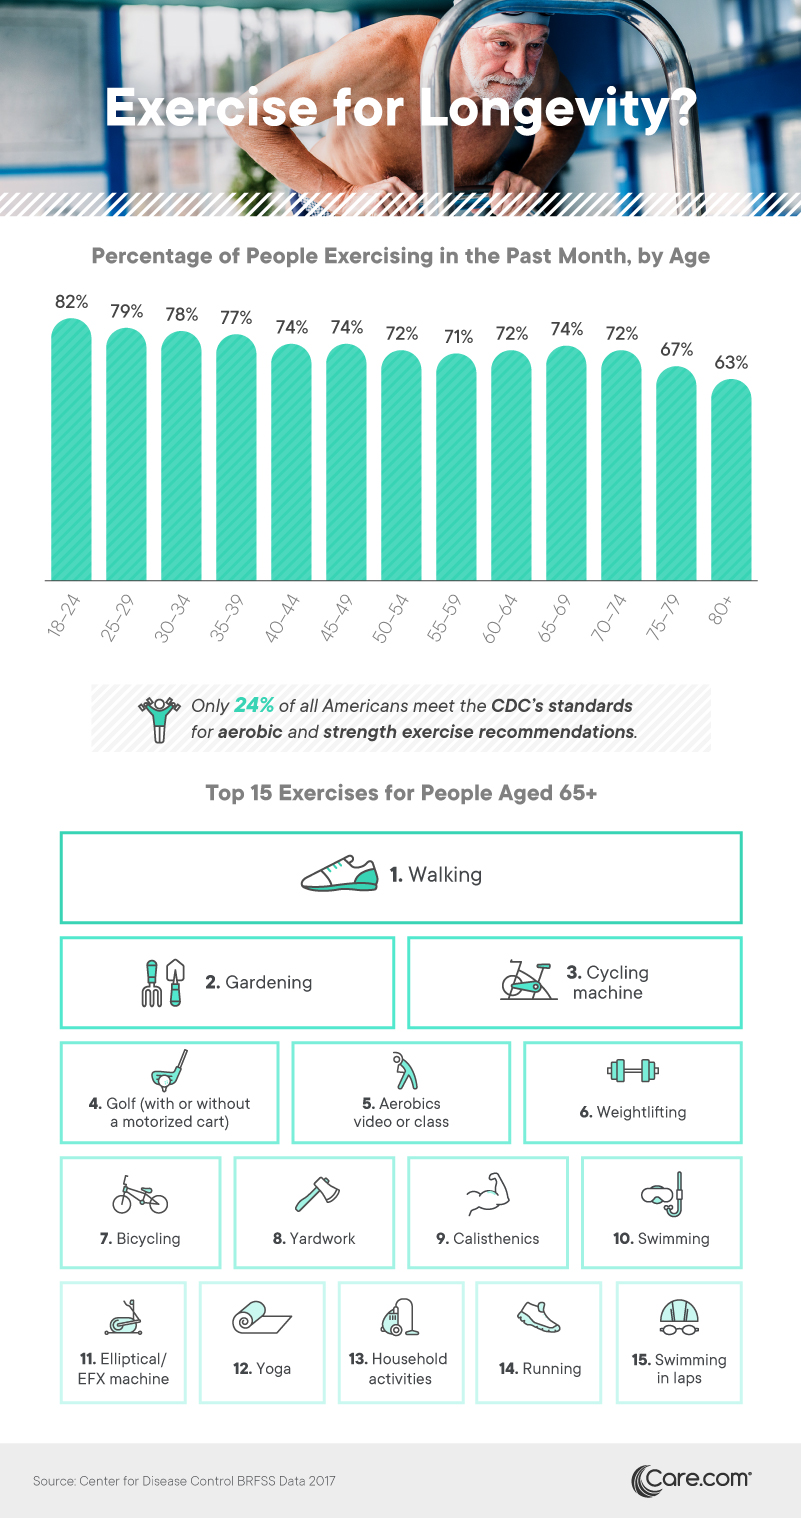 Percentage of people exercising in the past month, by age - Care.com